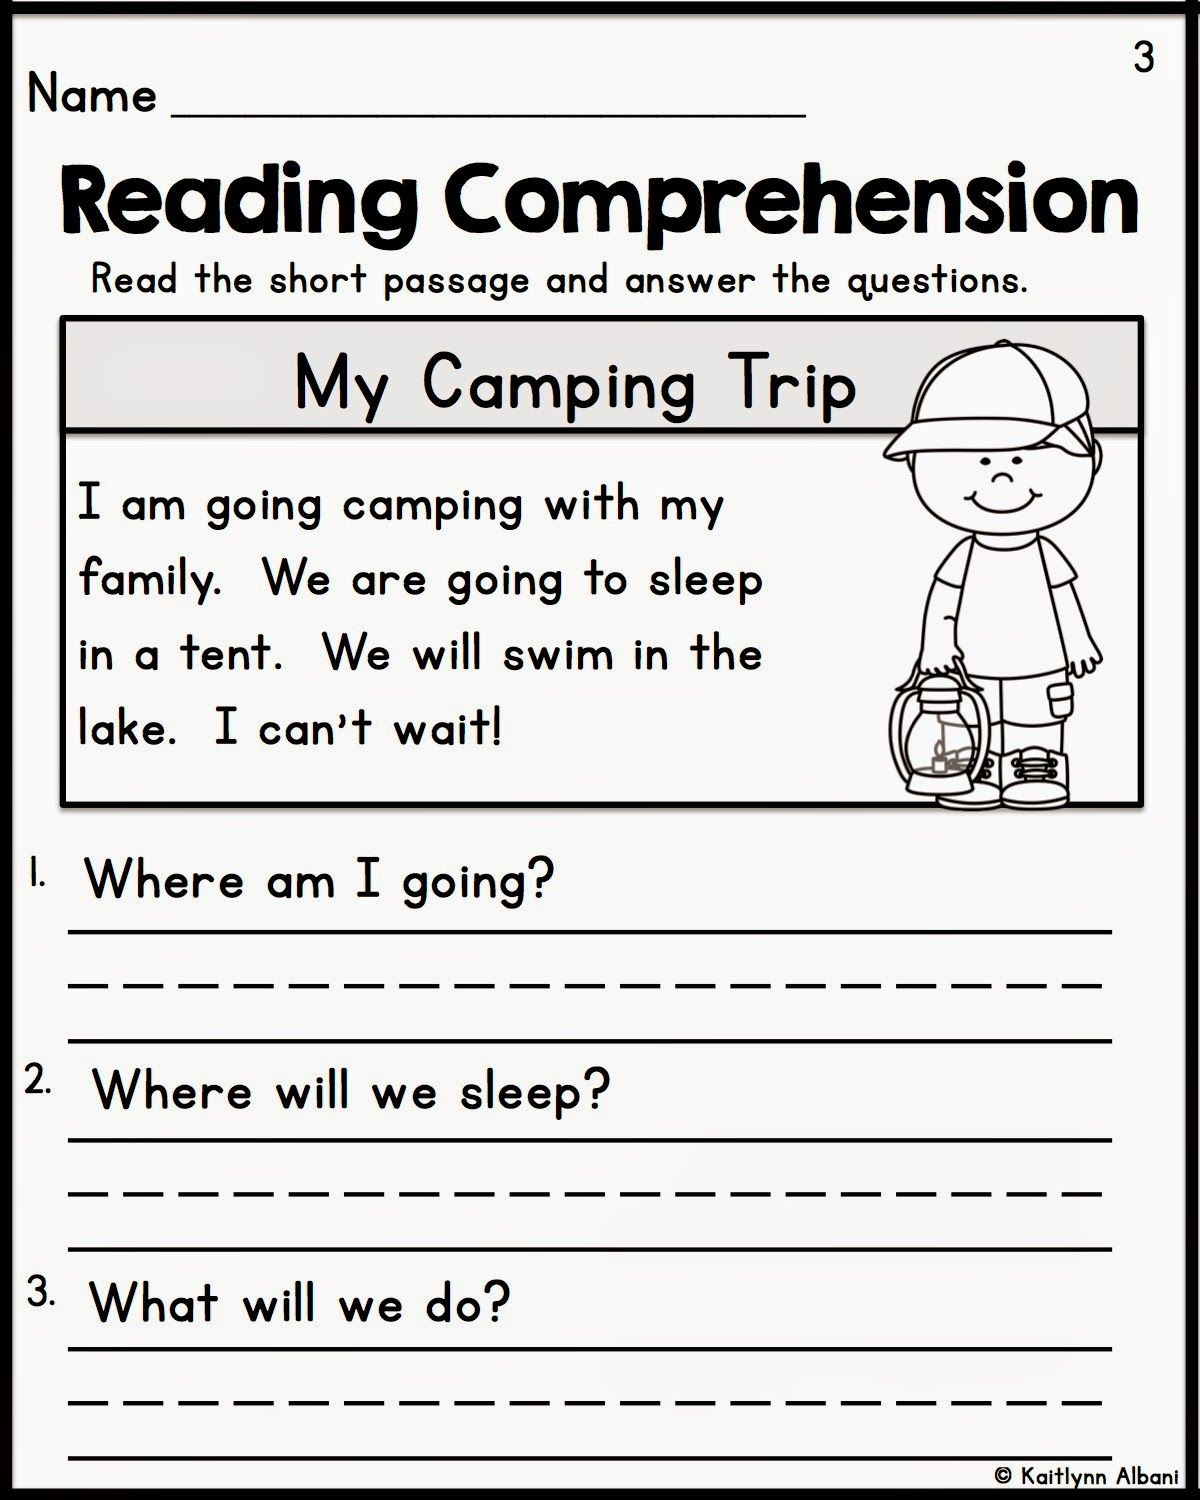 Preschool Reading Comprehension Worksheets Worksheet Fill In the Missing Number Kindergarten Kg